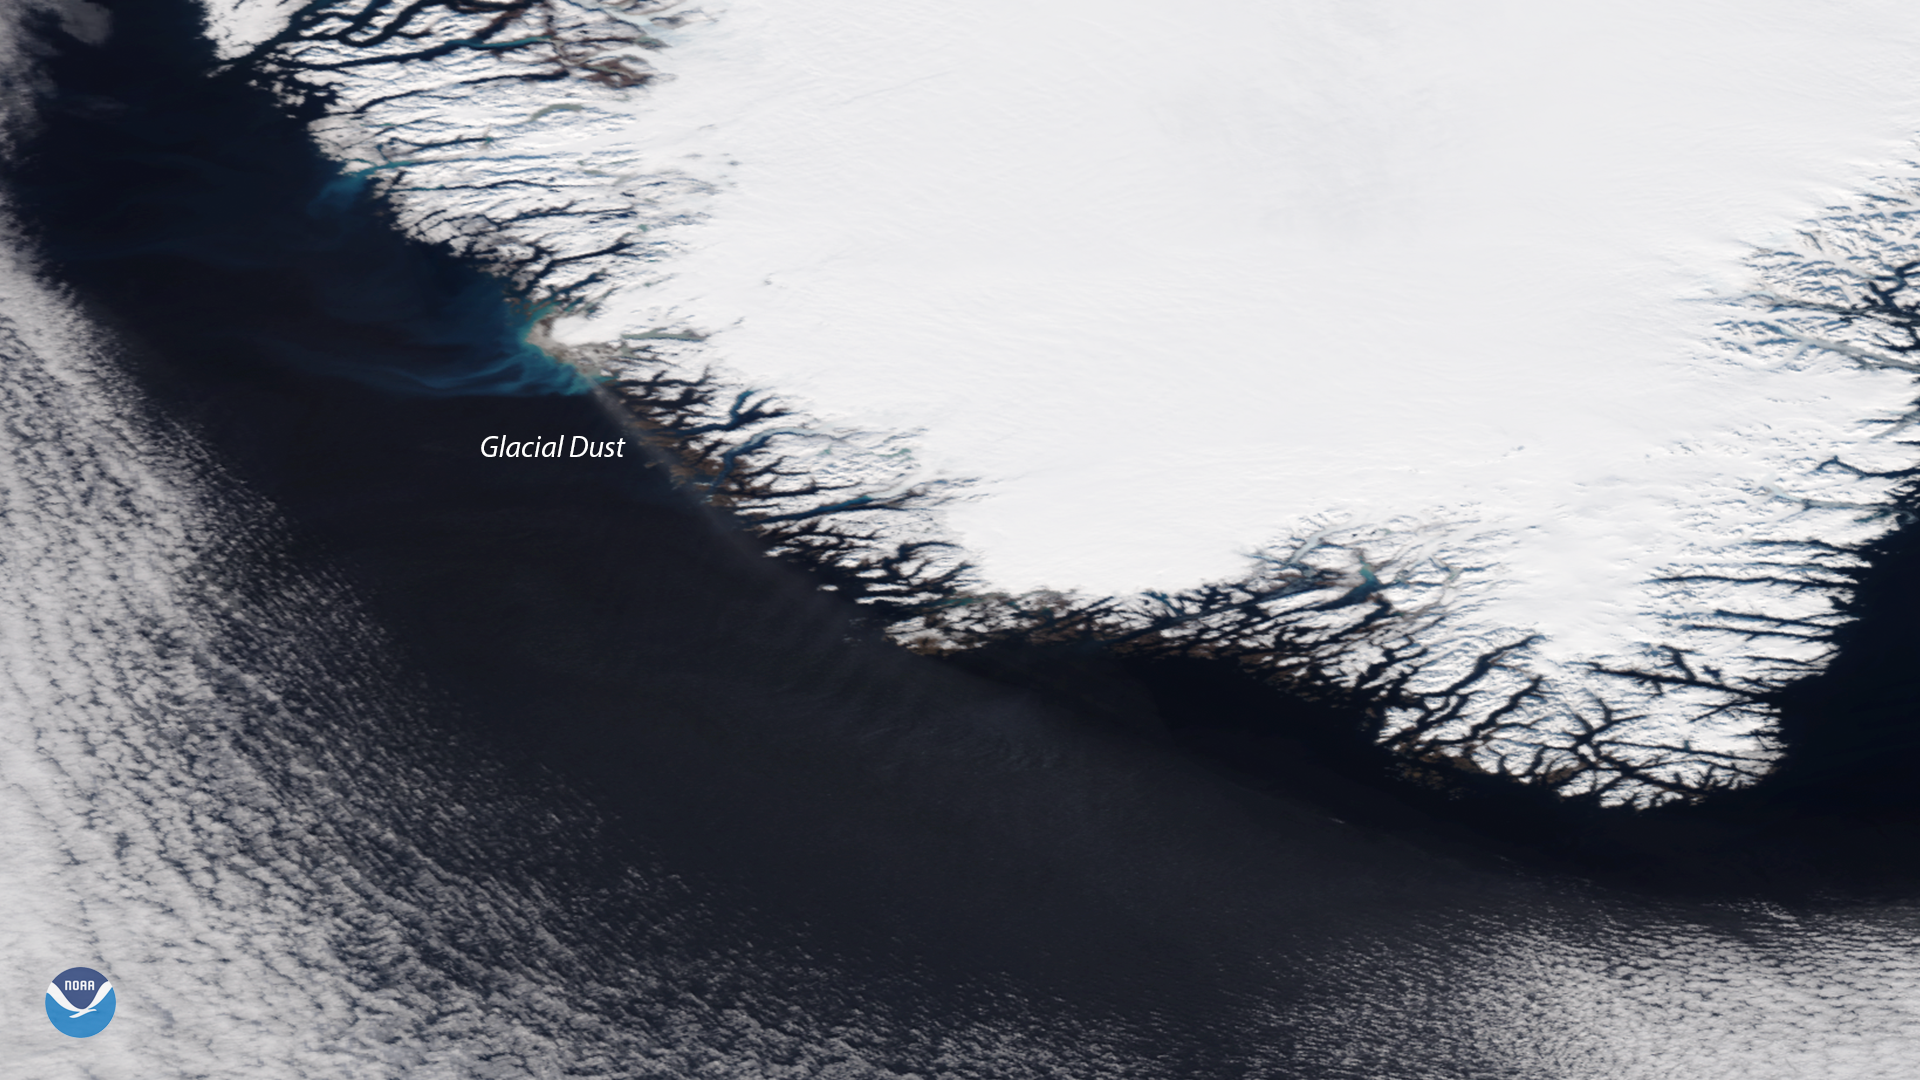 Glacial Dust Spotted Off the Coast of Greenland